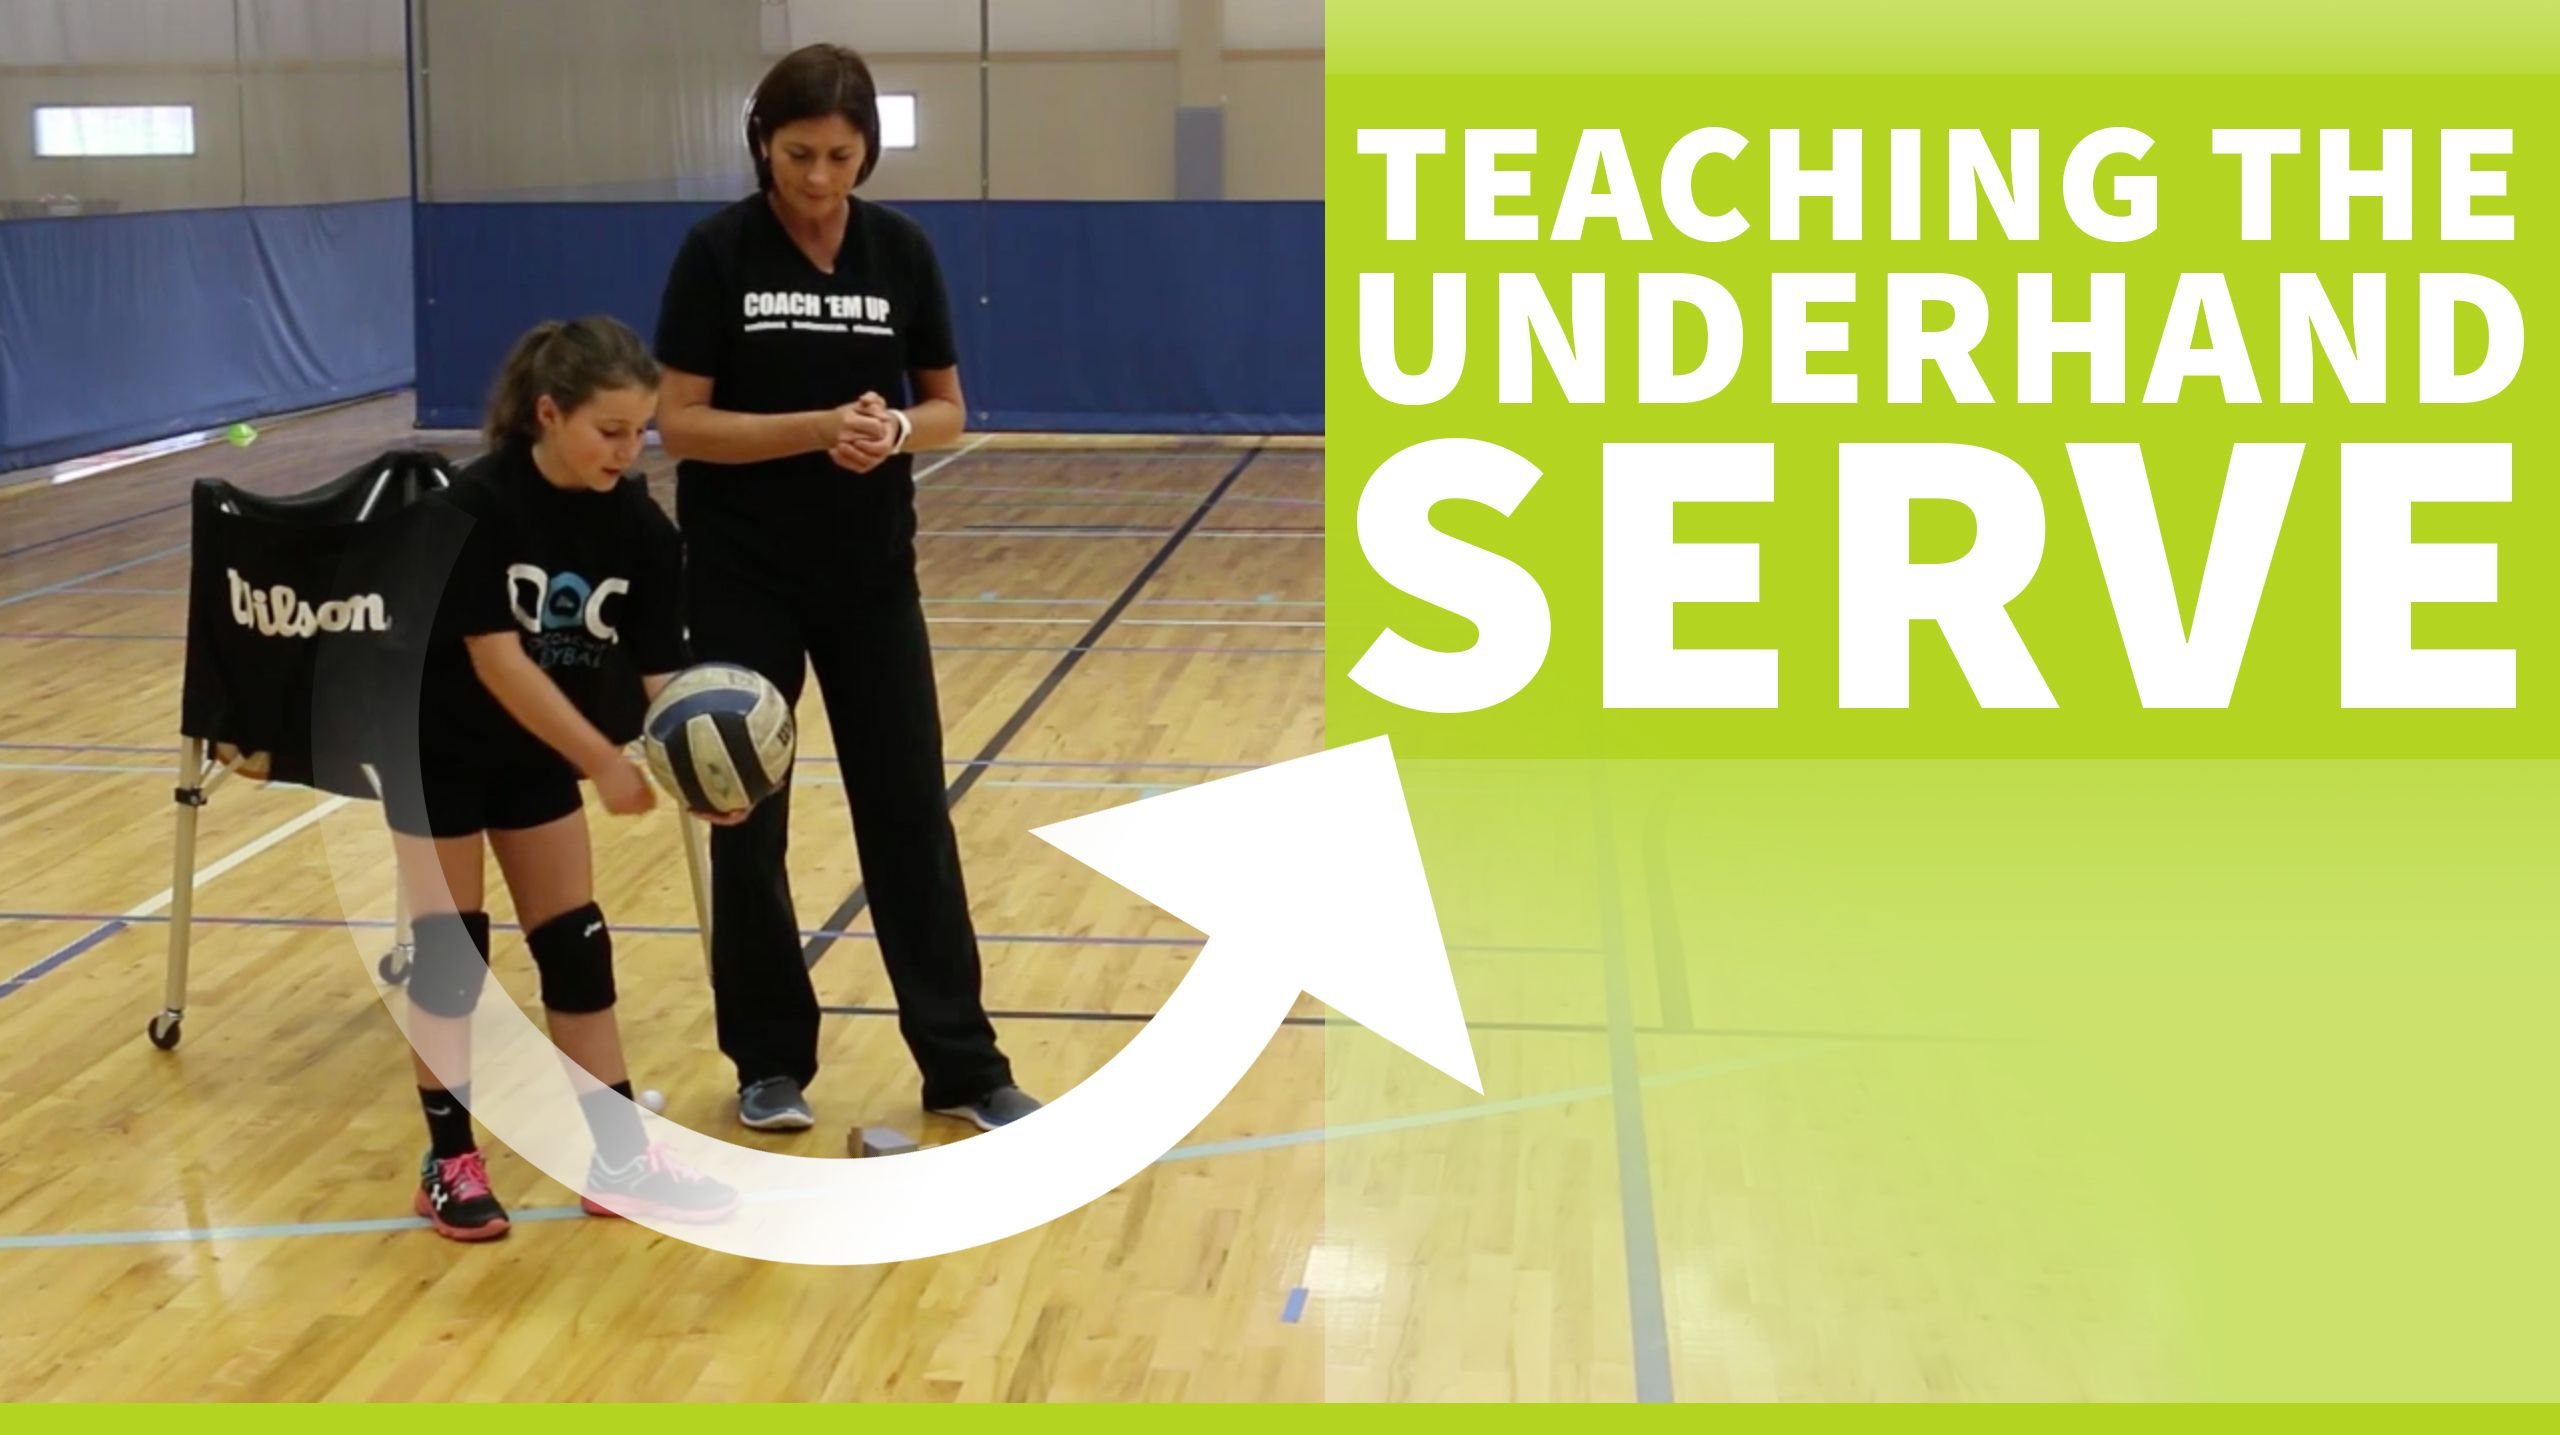 Teaching The Underhand Volleyball Serve The Art Of Coaching Volleyball Volleyball Serve Volleyball Training Coaching Volleyball